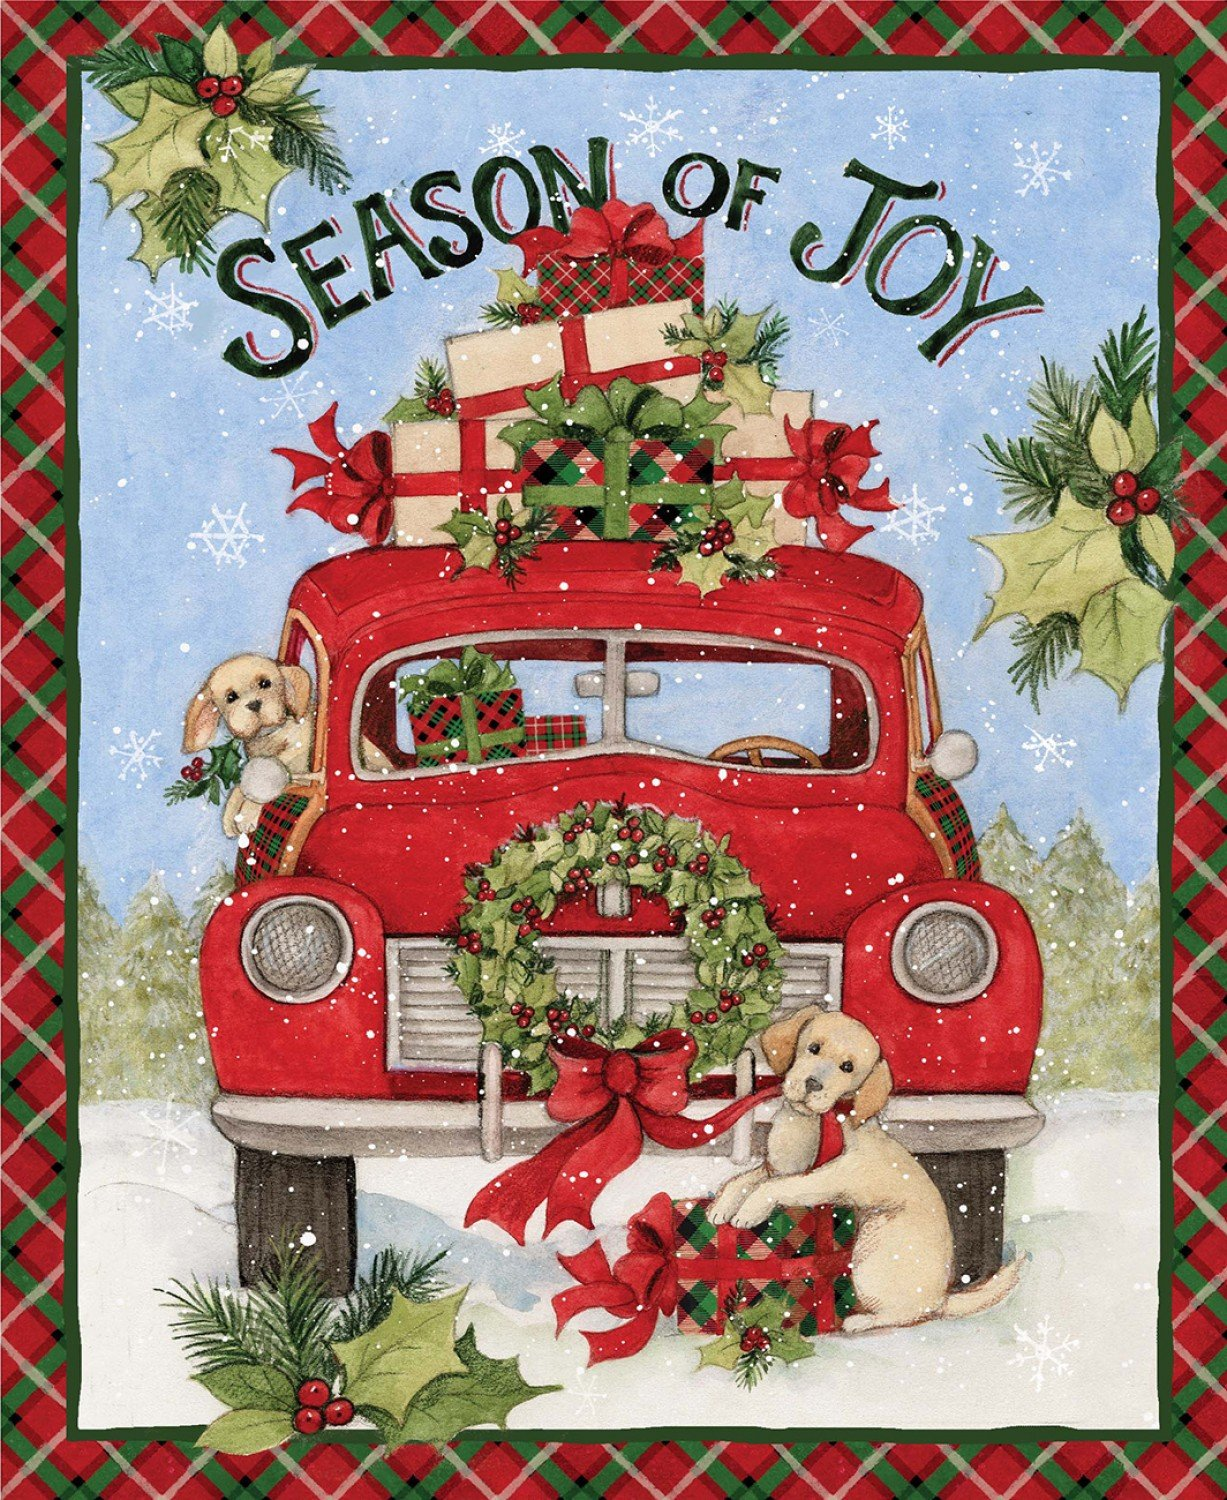 Christmas Season of Joy Red Truck by Susan Winget for Springs Creative Collection 69113A20715